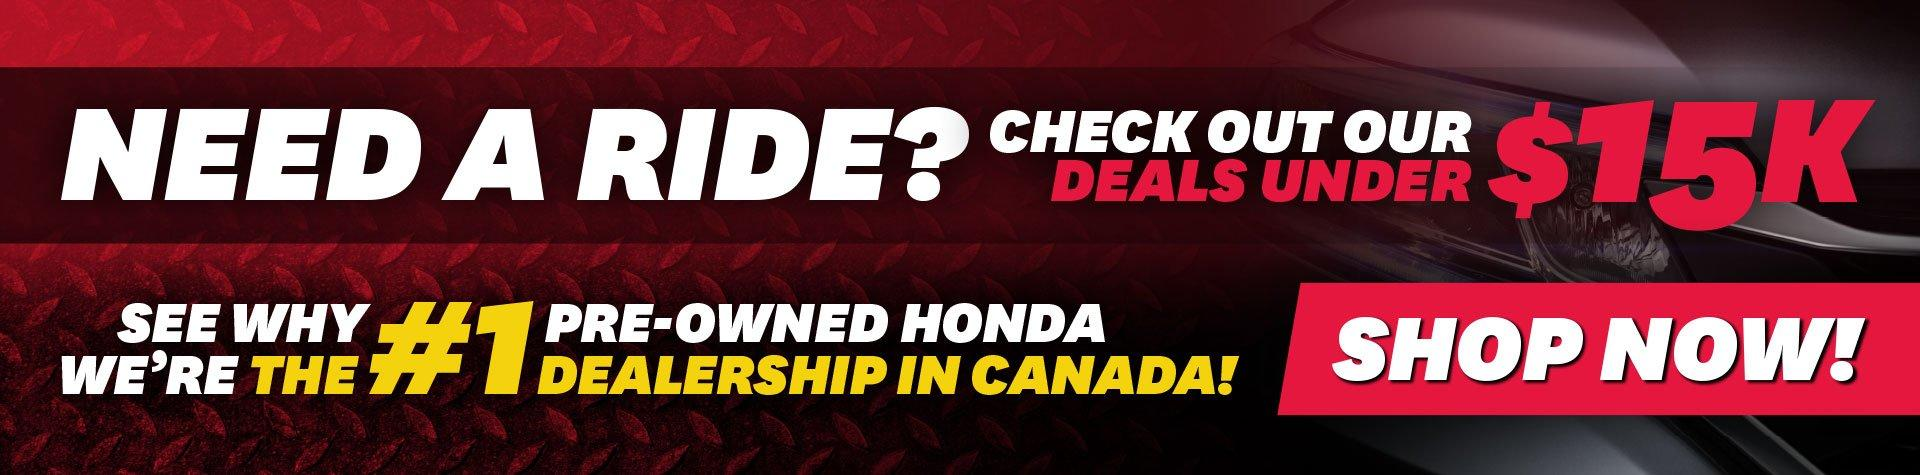 Need a Ride? Vehicles under 15k! See why we're the number 1 pre-owned Honda dealership in Canada!